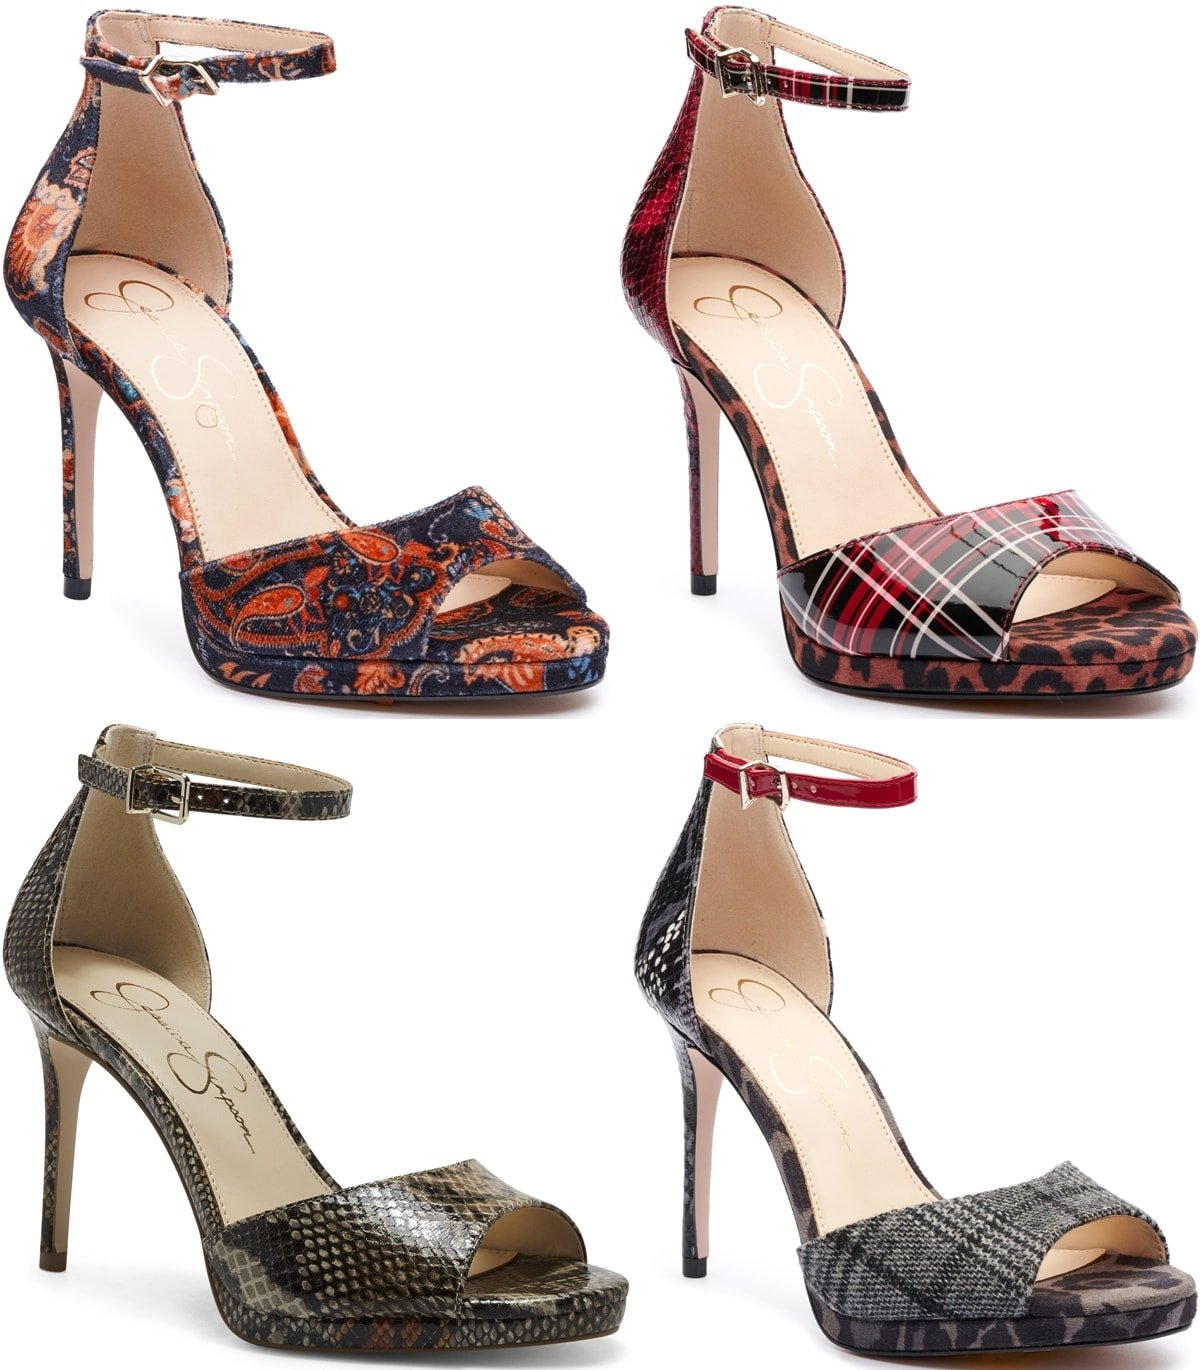 A stiletto heel heightens the modern elegance of a standout sandal from Jessica Simpson topped with a slim ankle strap